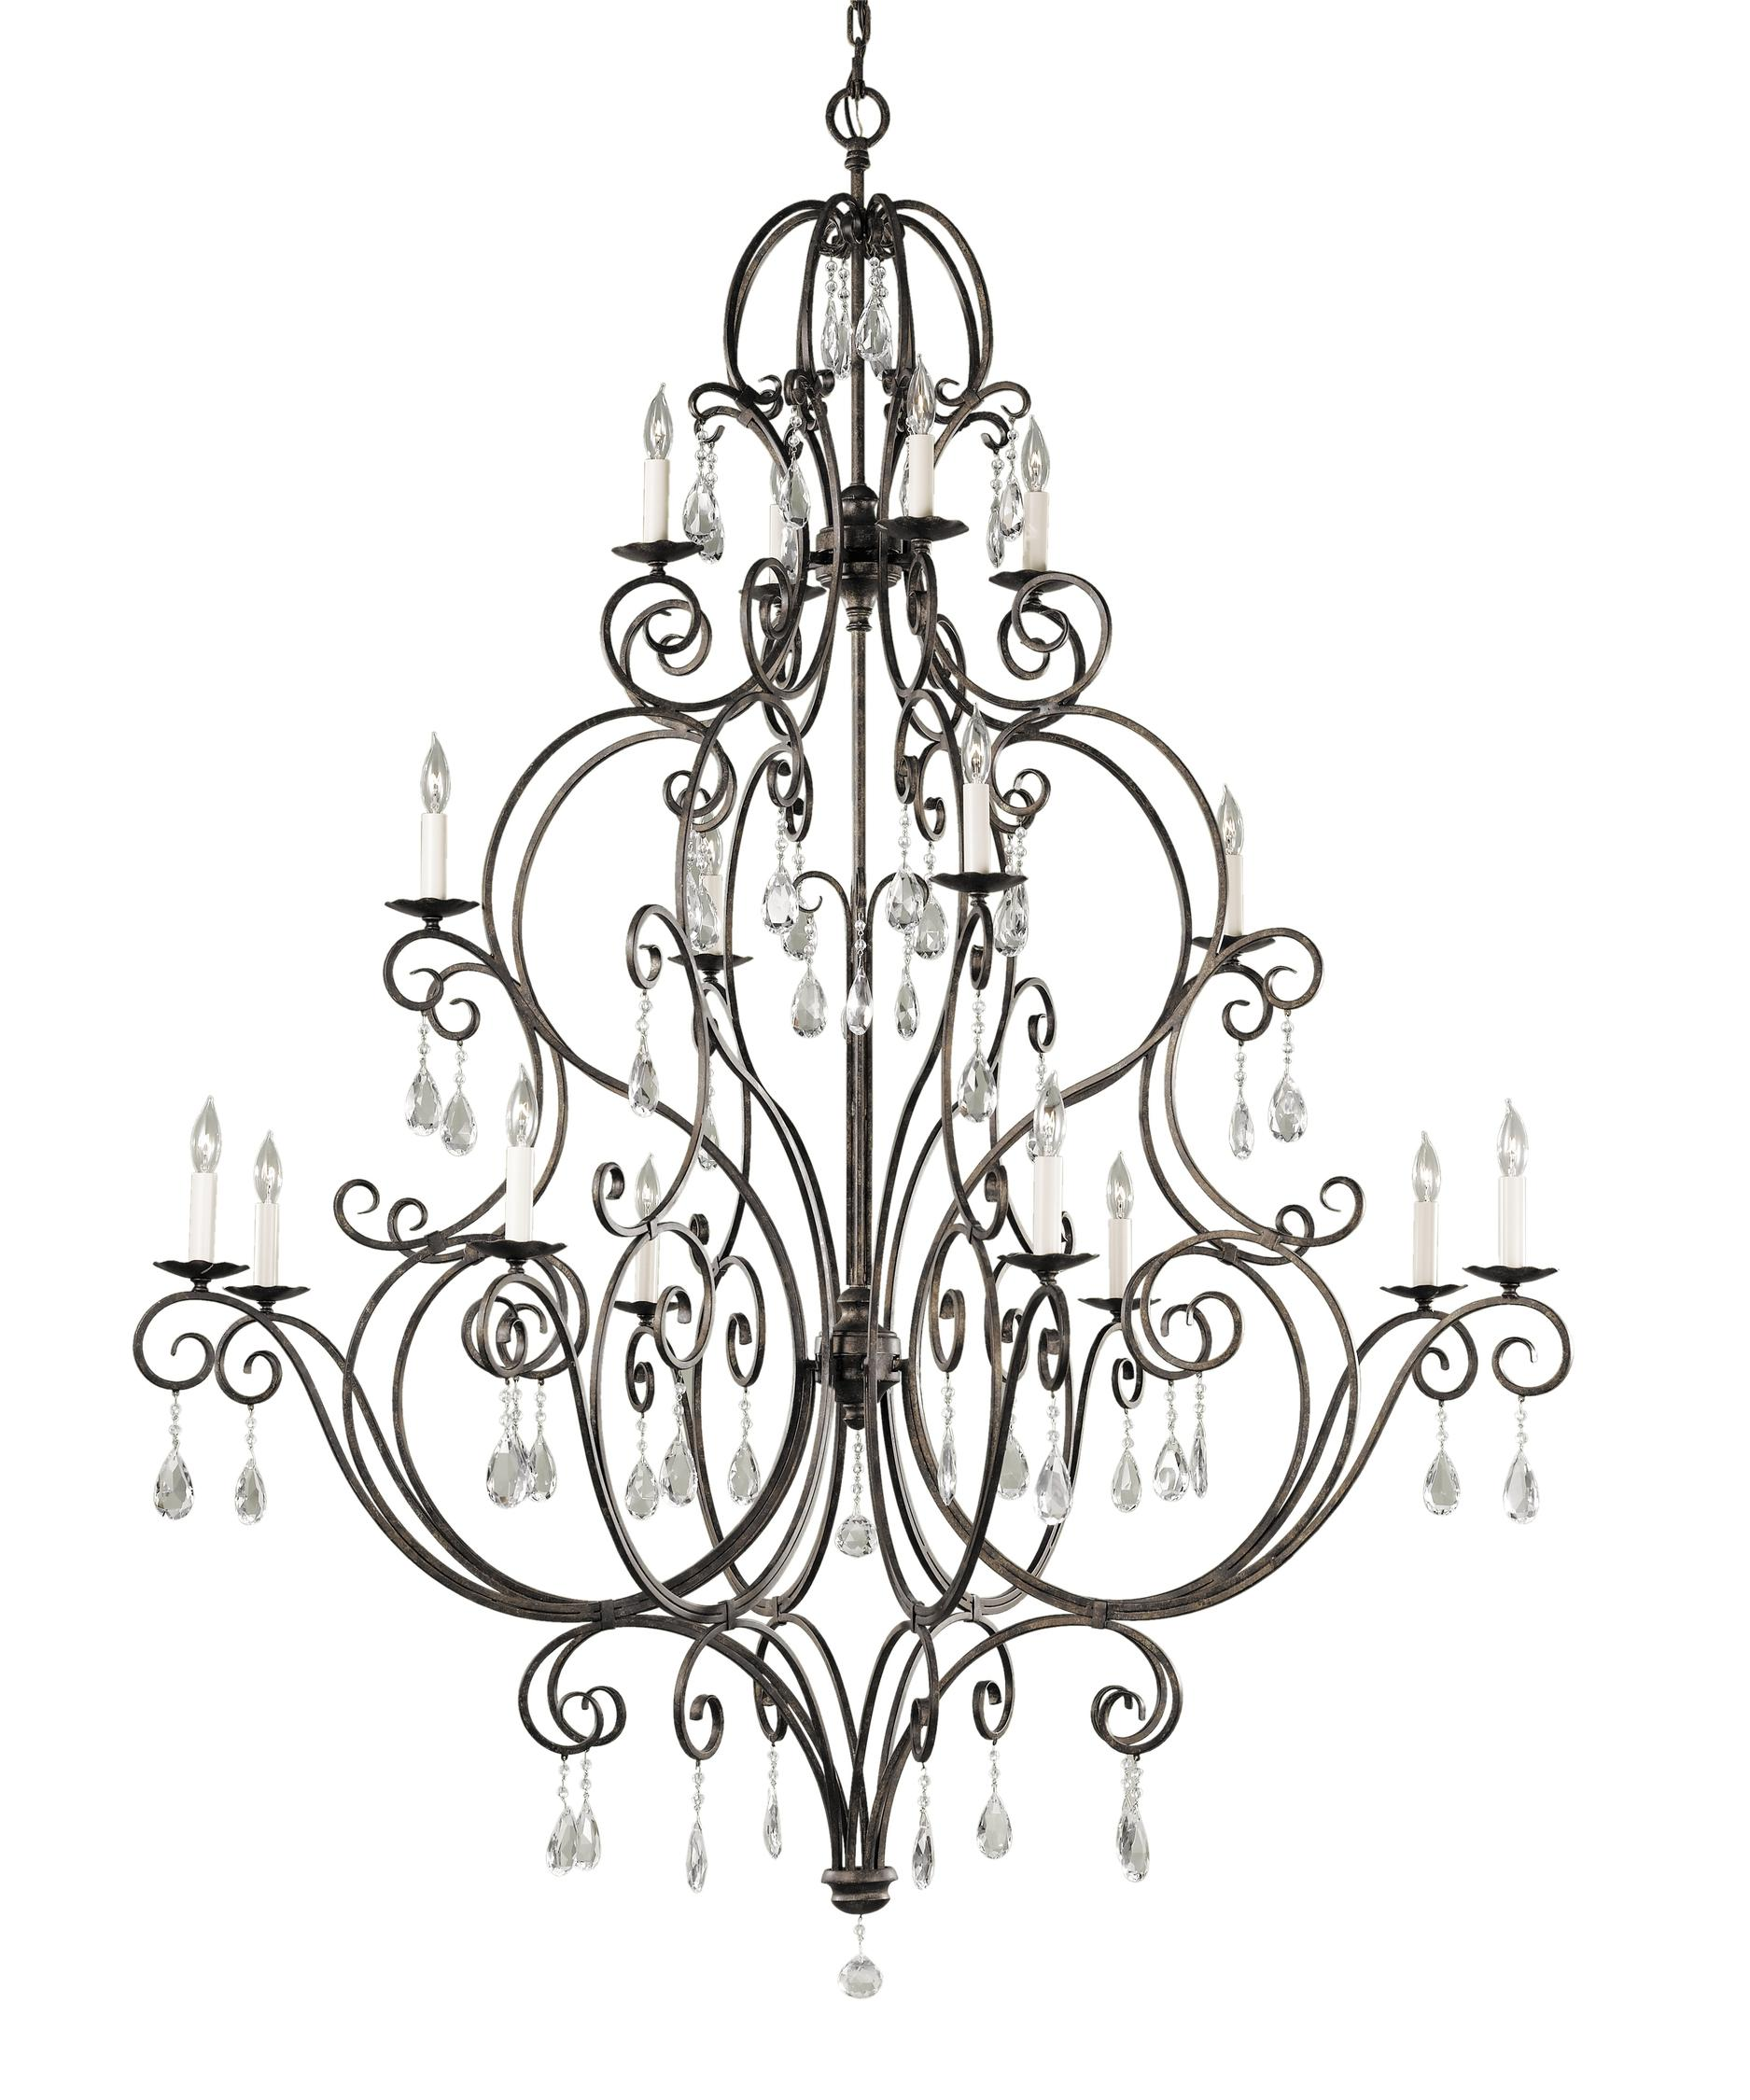 Murray Feiss Chateau 54 Inch Wide 16 Light Chandelier – Murray Feiss Chandeliers